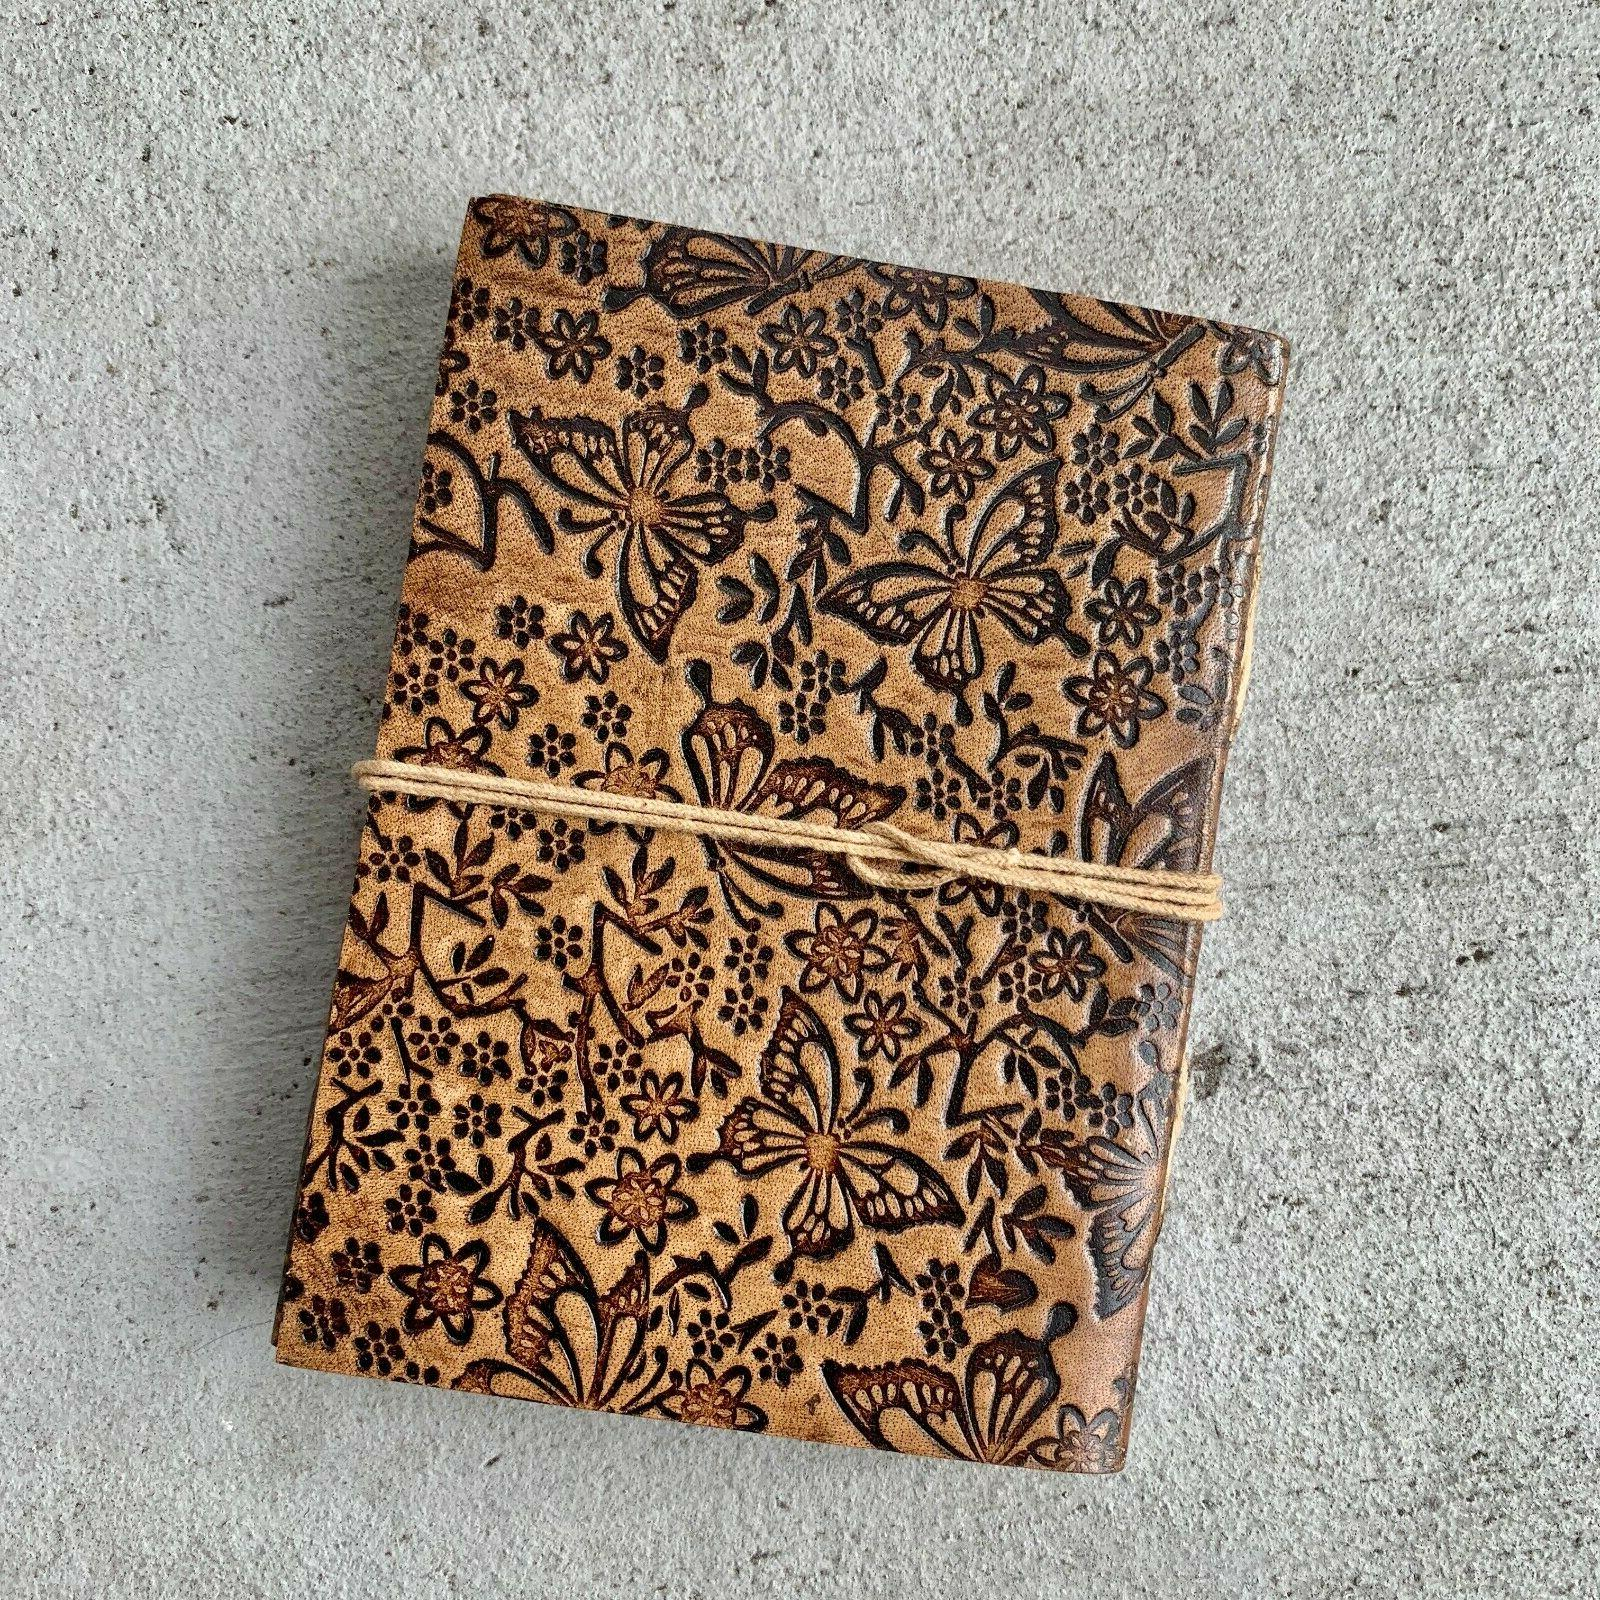 leather junk journal butterfly nature scrapbook travelers